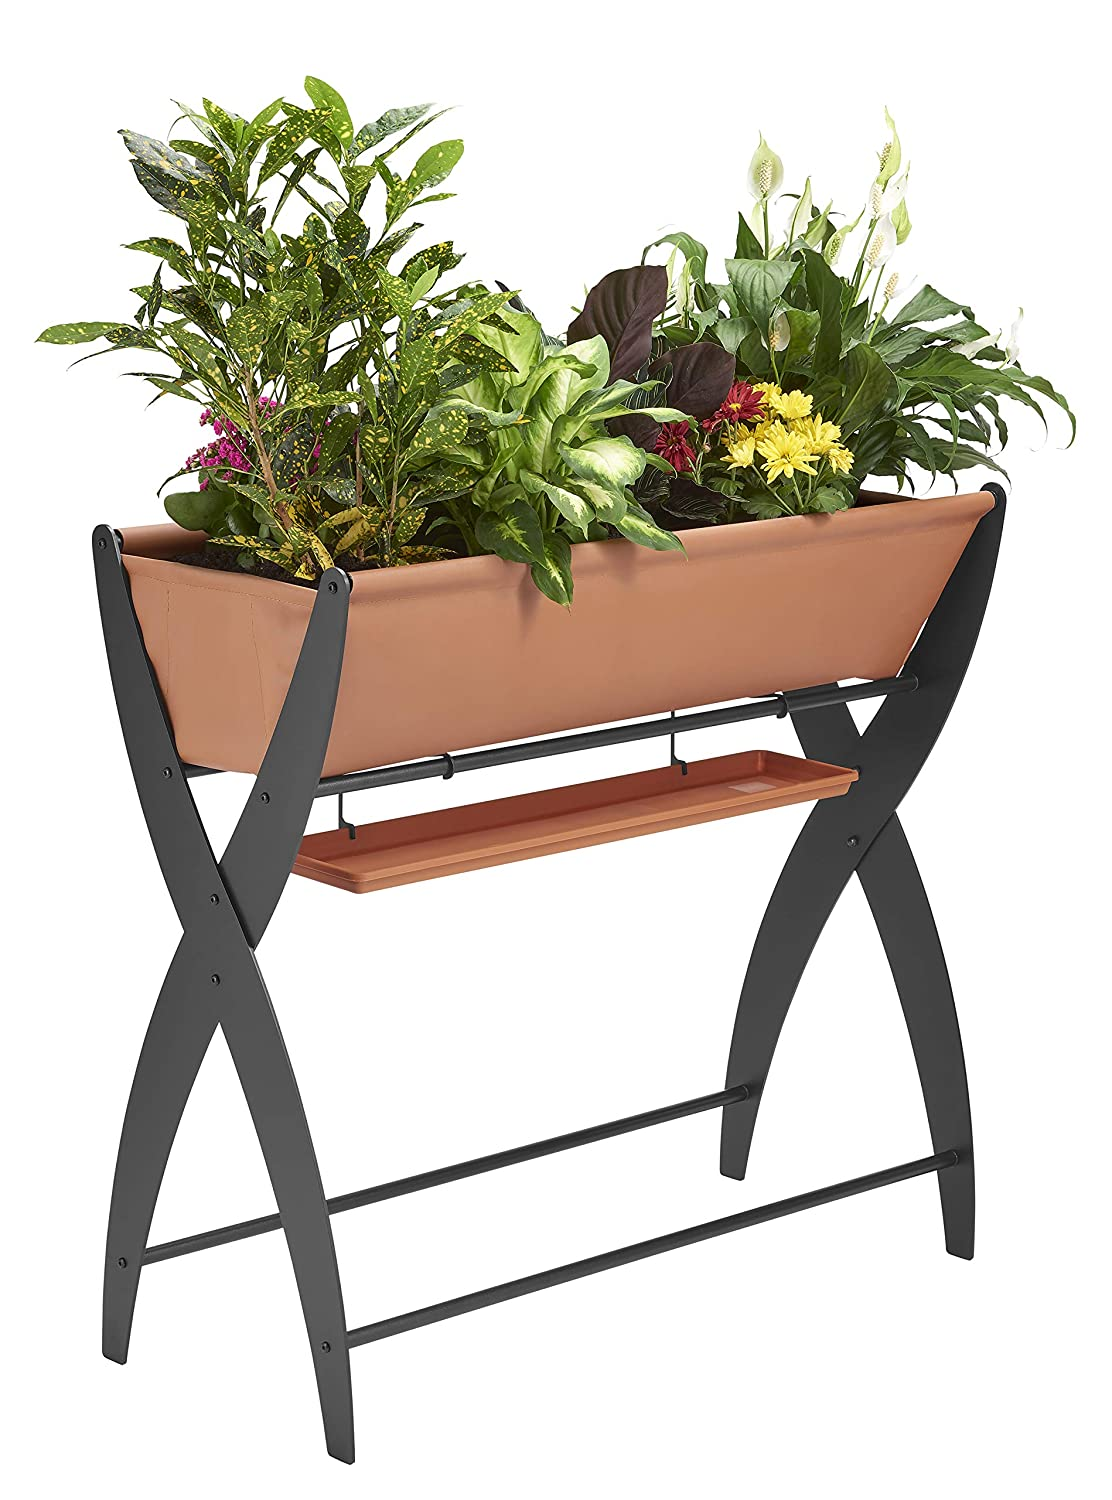 DESIGN SPECIALTIES Raised Garden Bed Trough Planter – Great for Patio Balcony – Indoor Outdoor – Elevated and FREESTANDING to Grow Flowers Vegetables OR Herbs